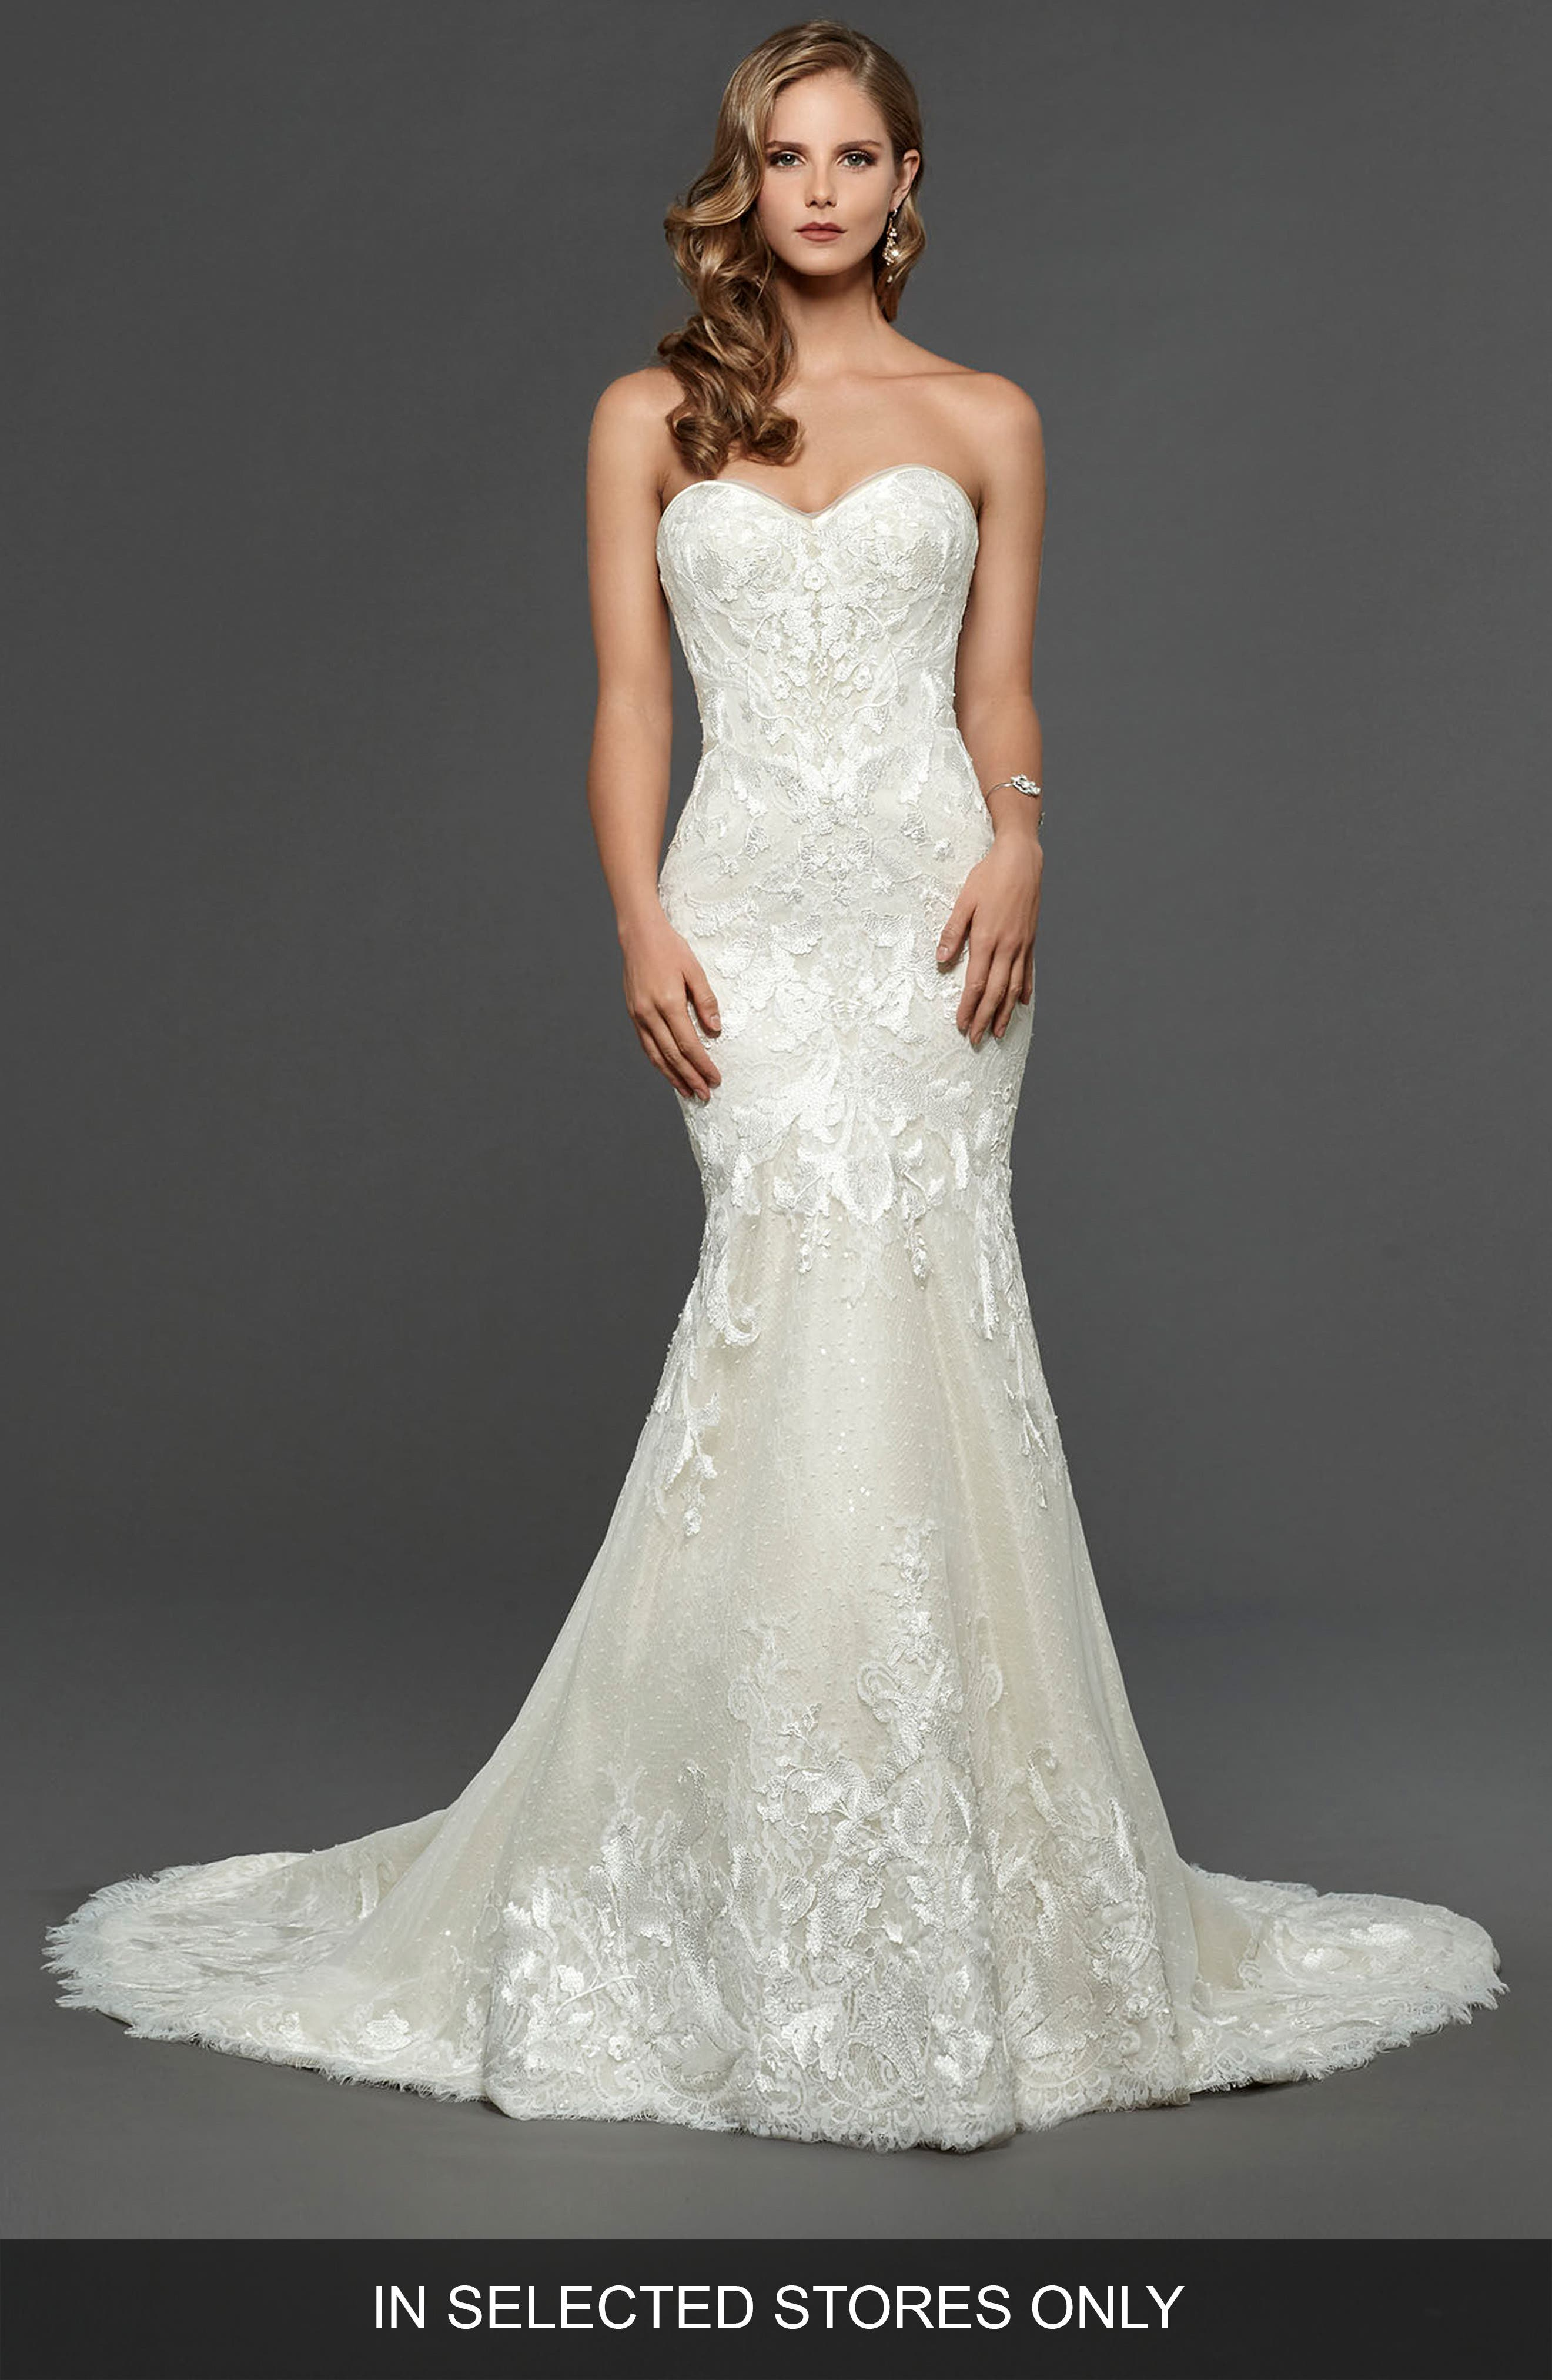 Claire Strapless Sweetheart Trumpet Gown,                         Main,                         color, 900